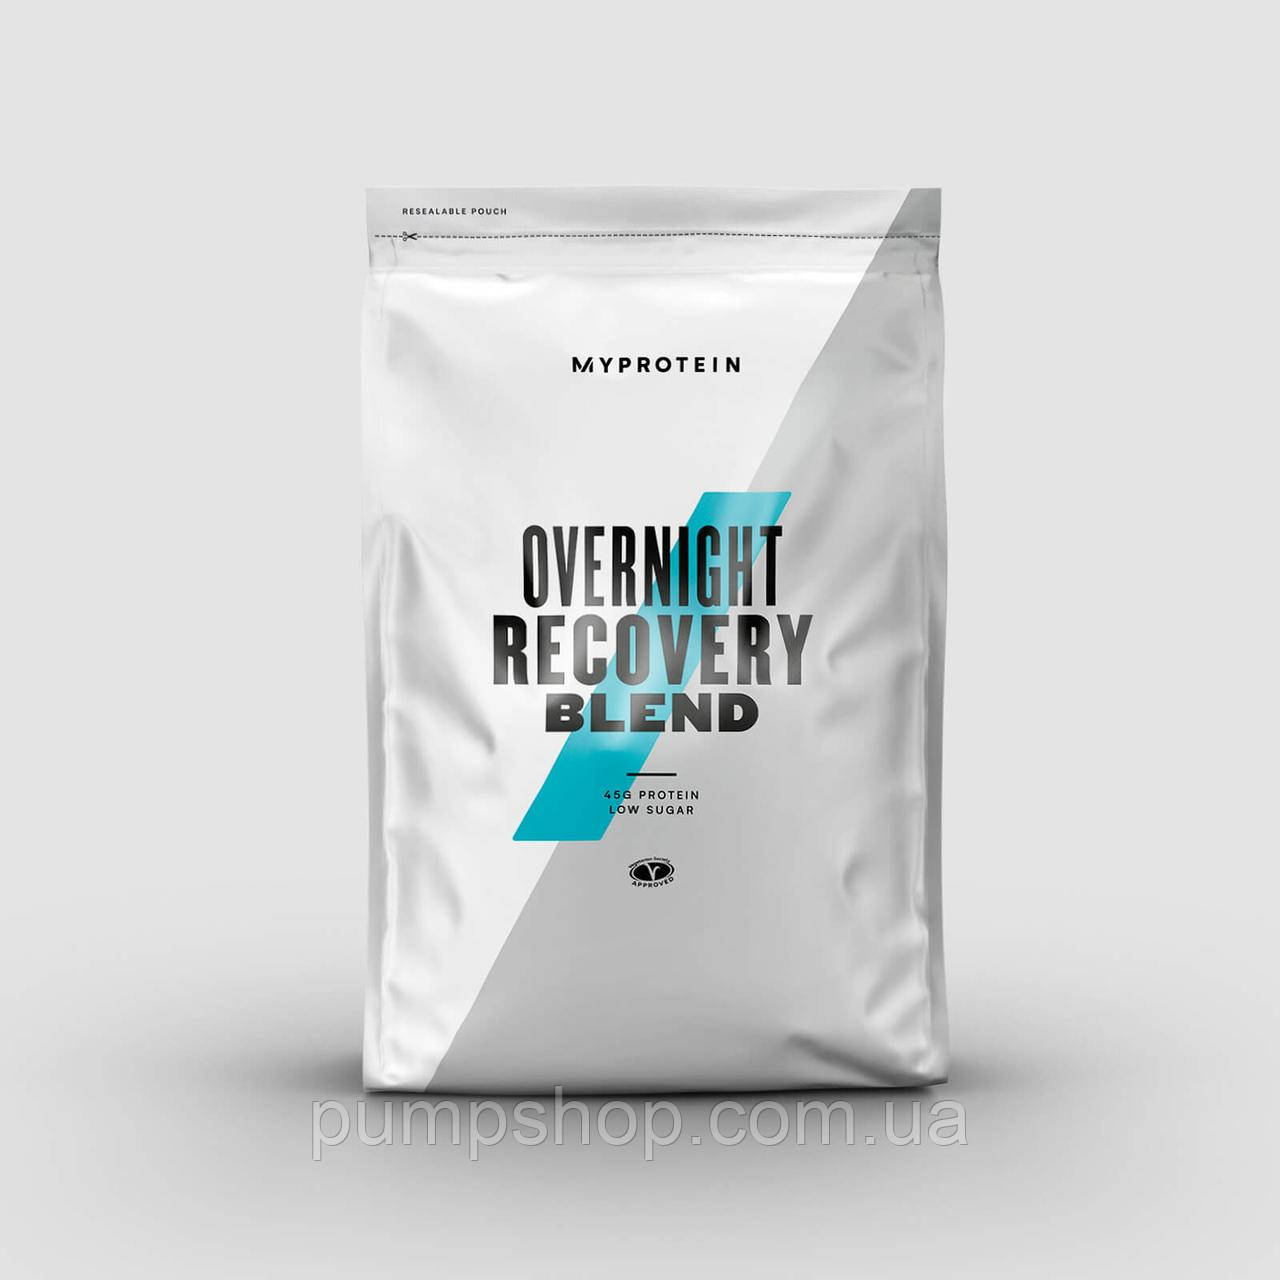 Многокомпонентный протеин MyProtein Overnight Recovery Blend 2500 г